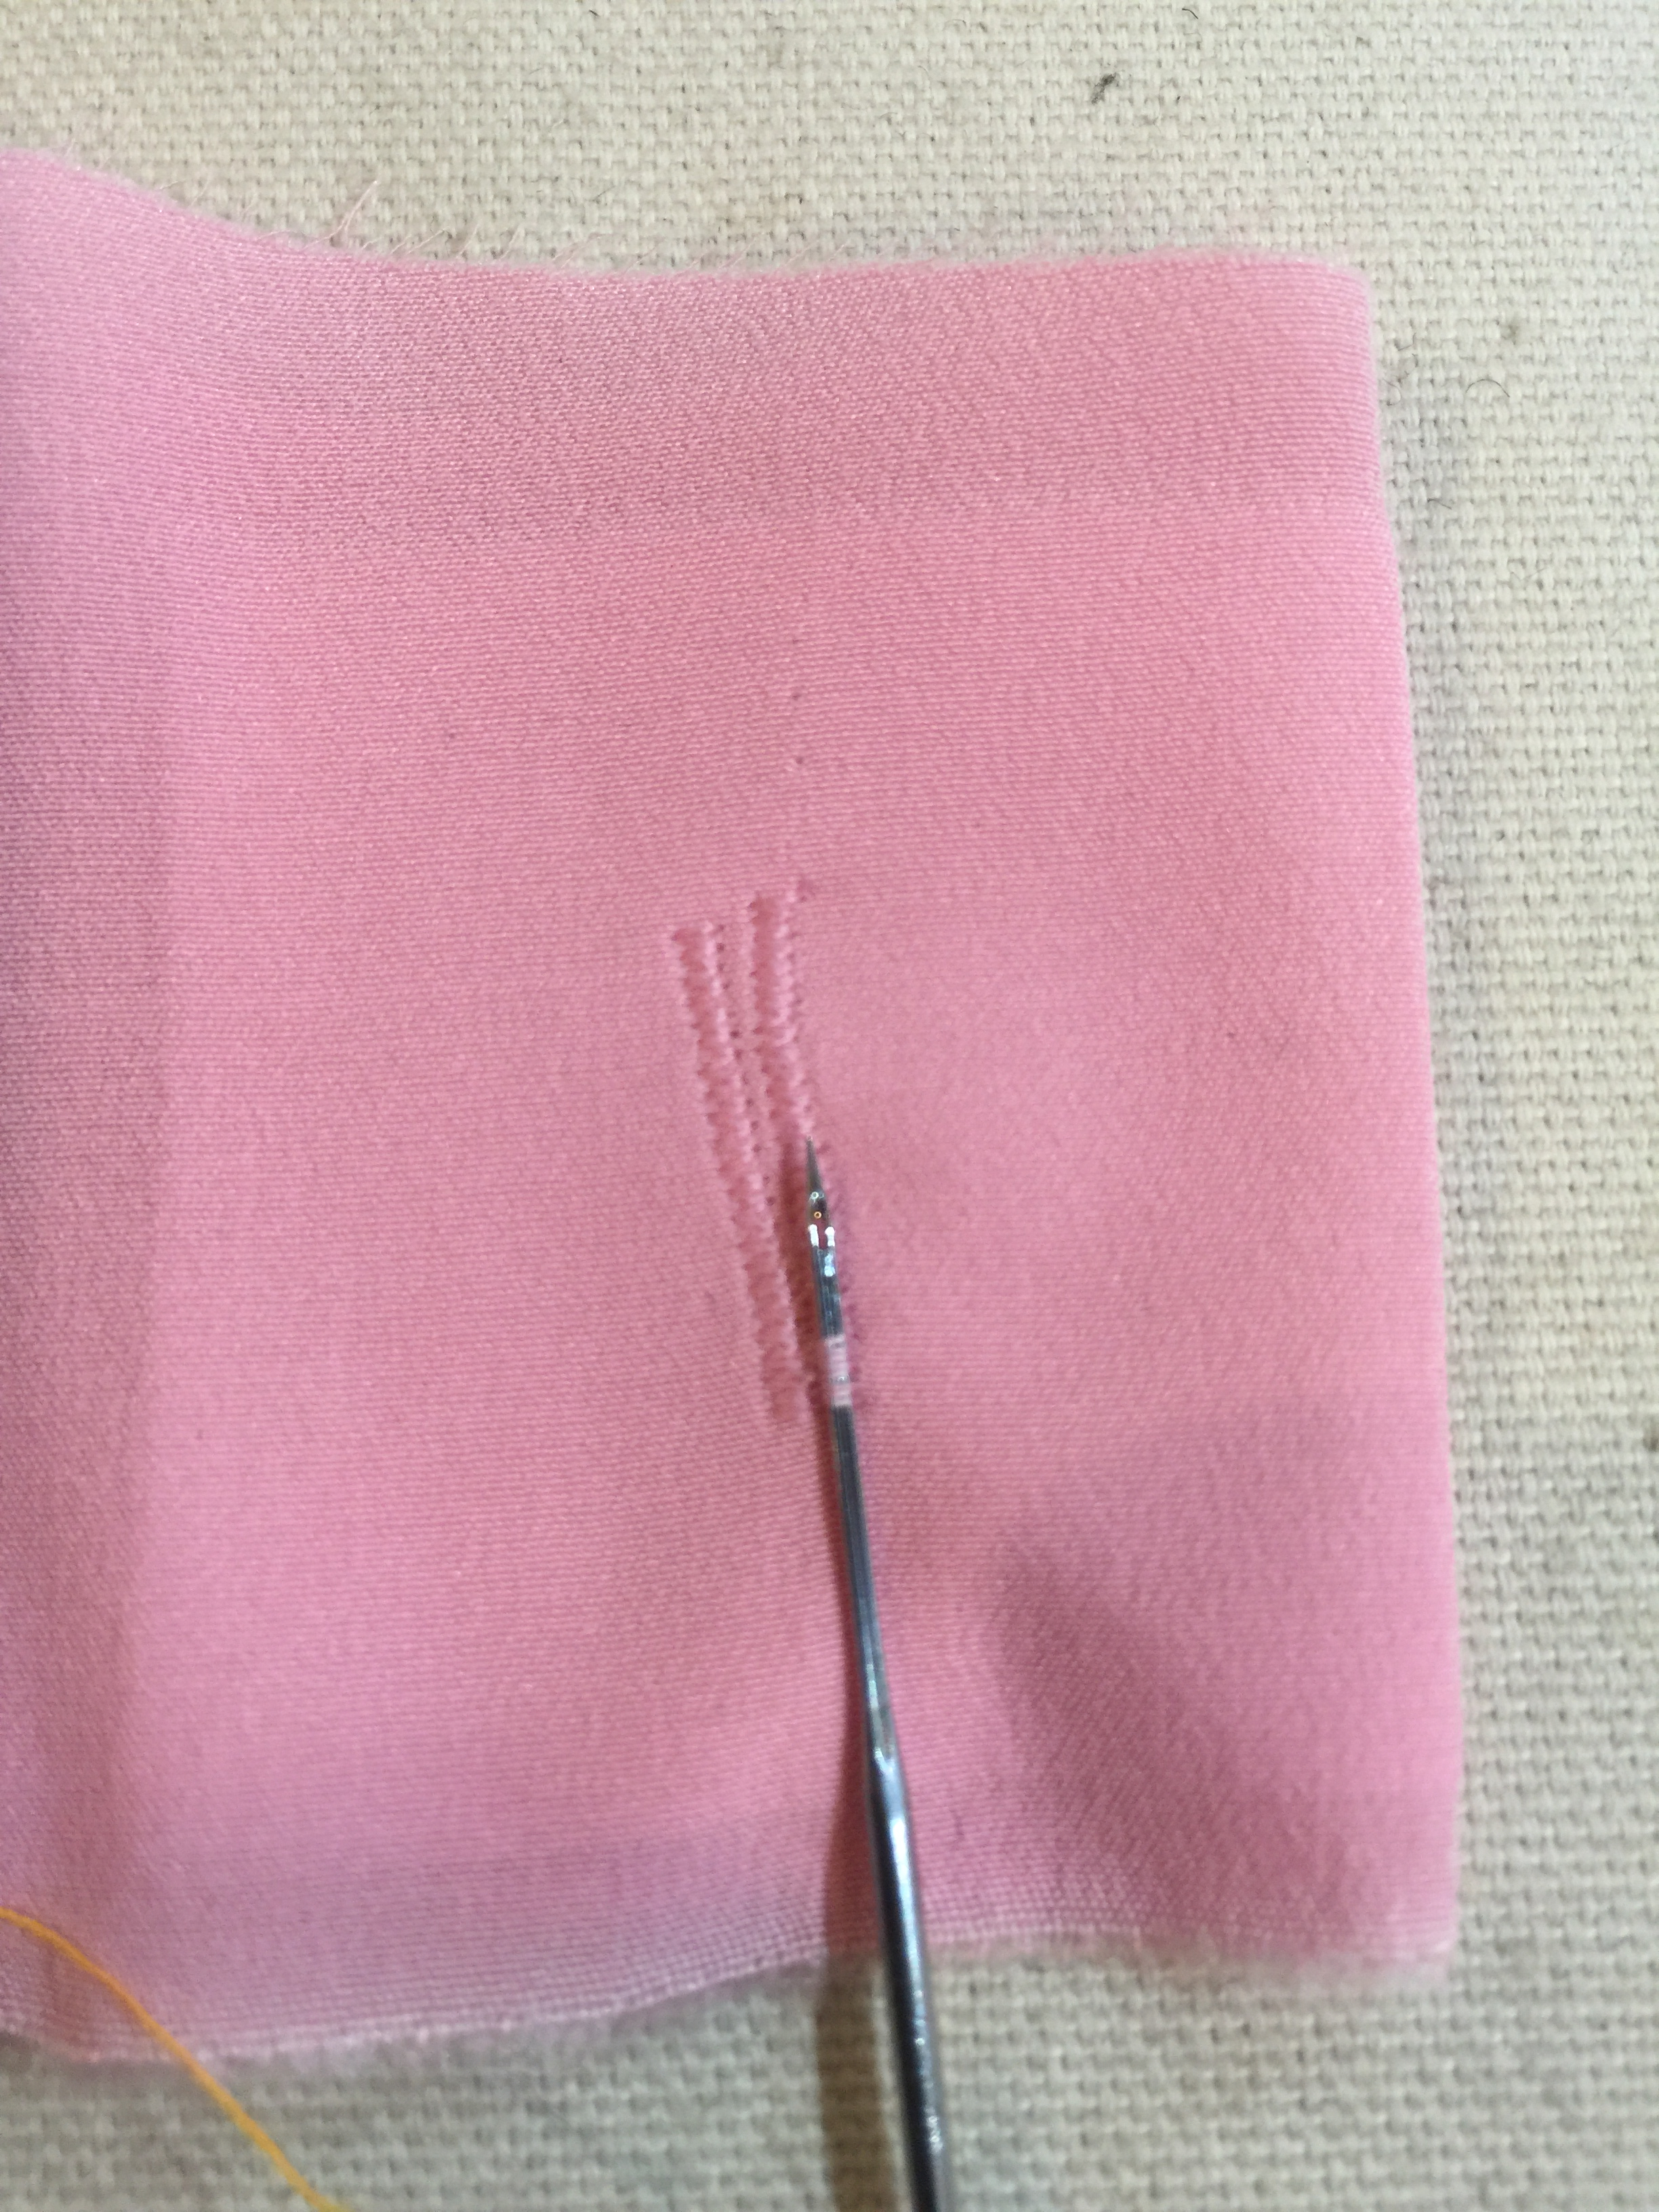 isolate stitches